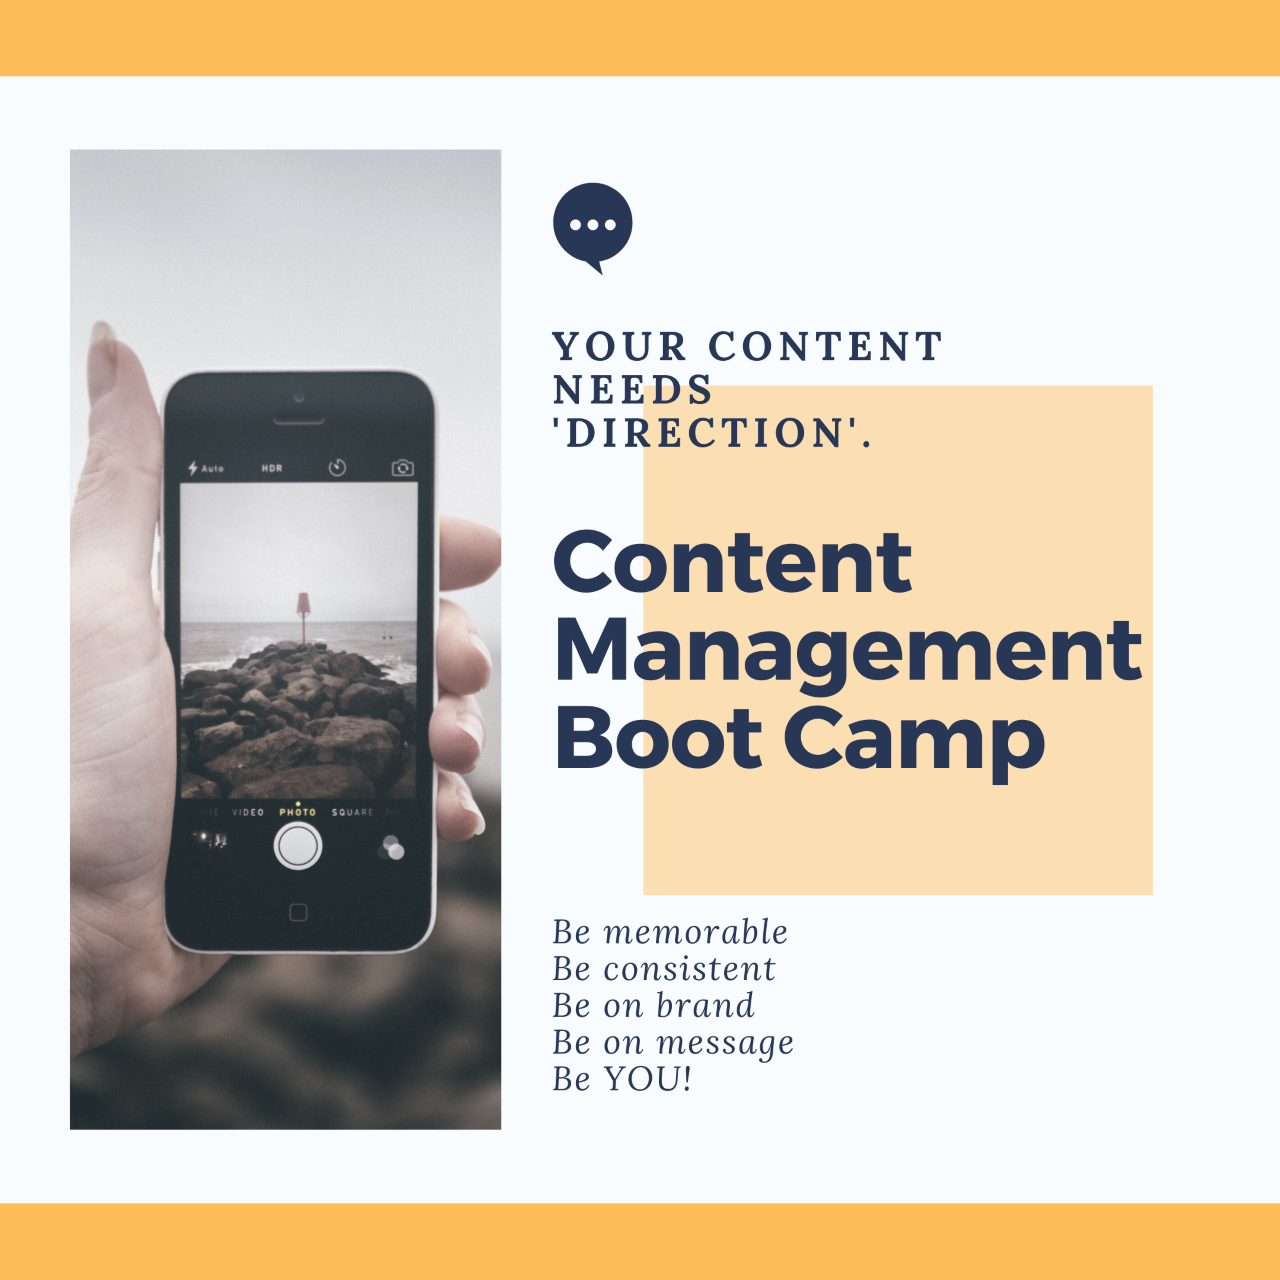 Content Management Boot Camp